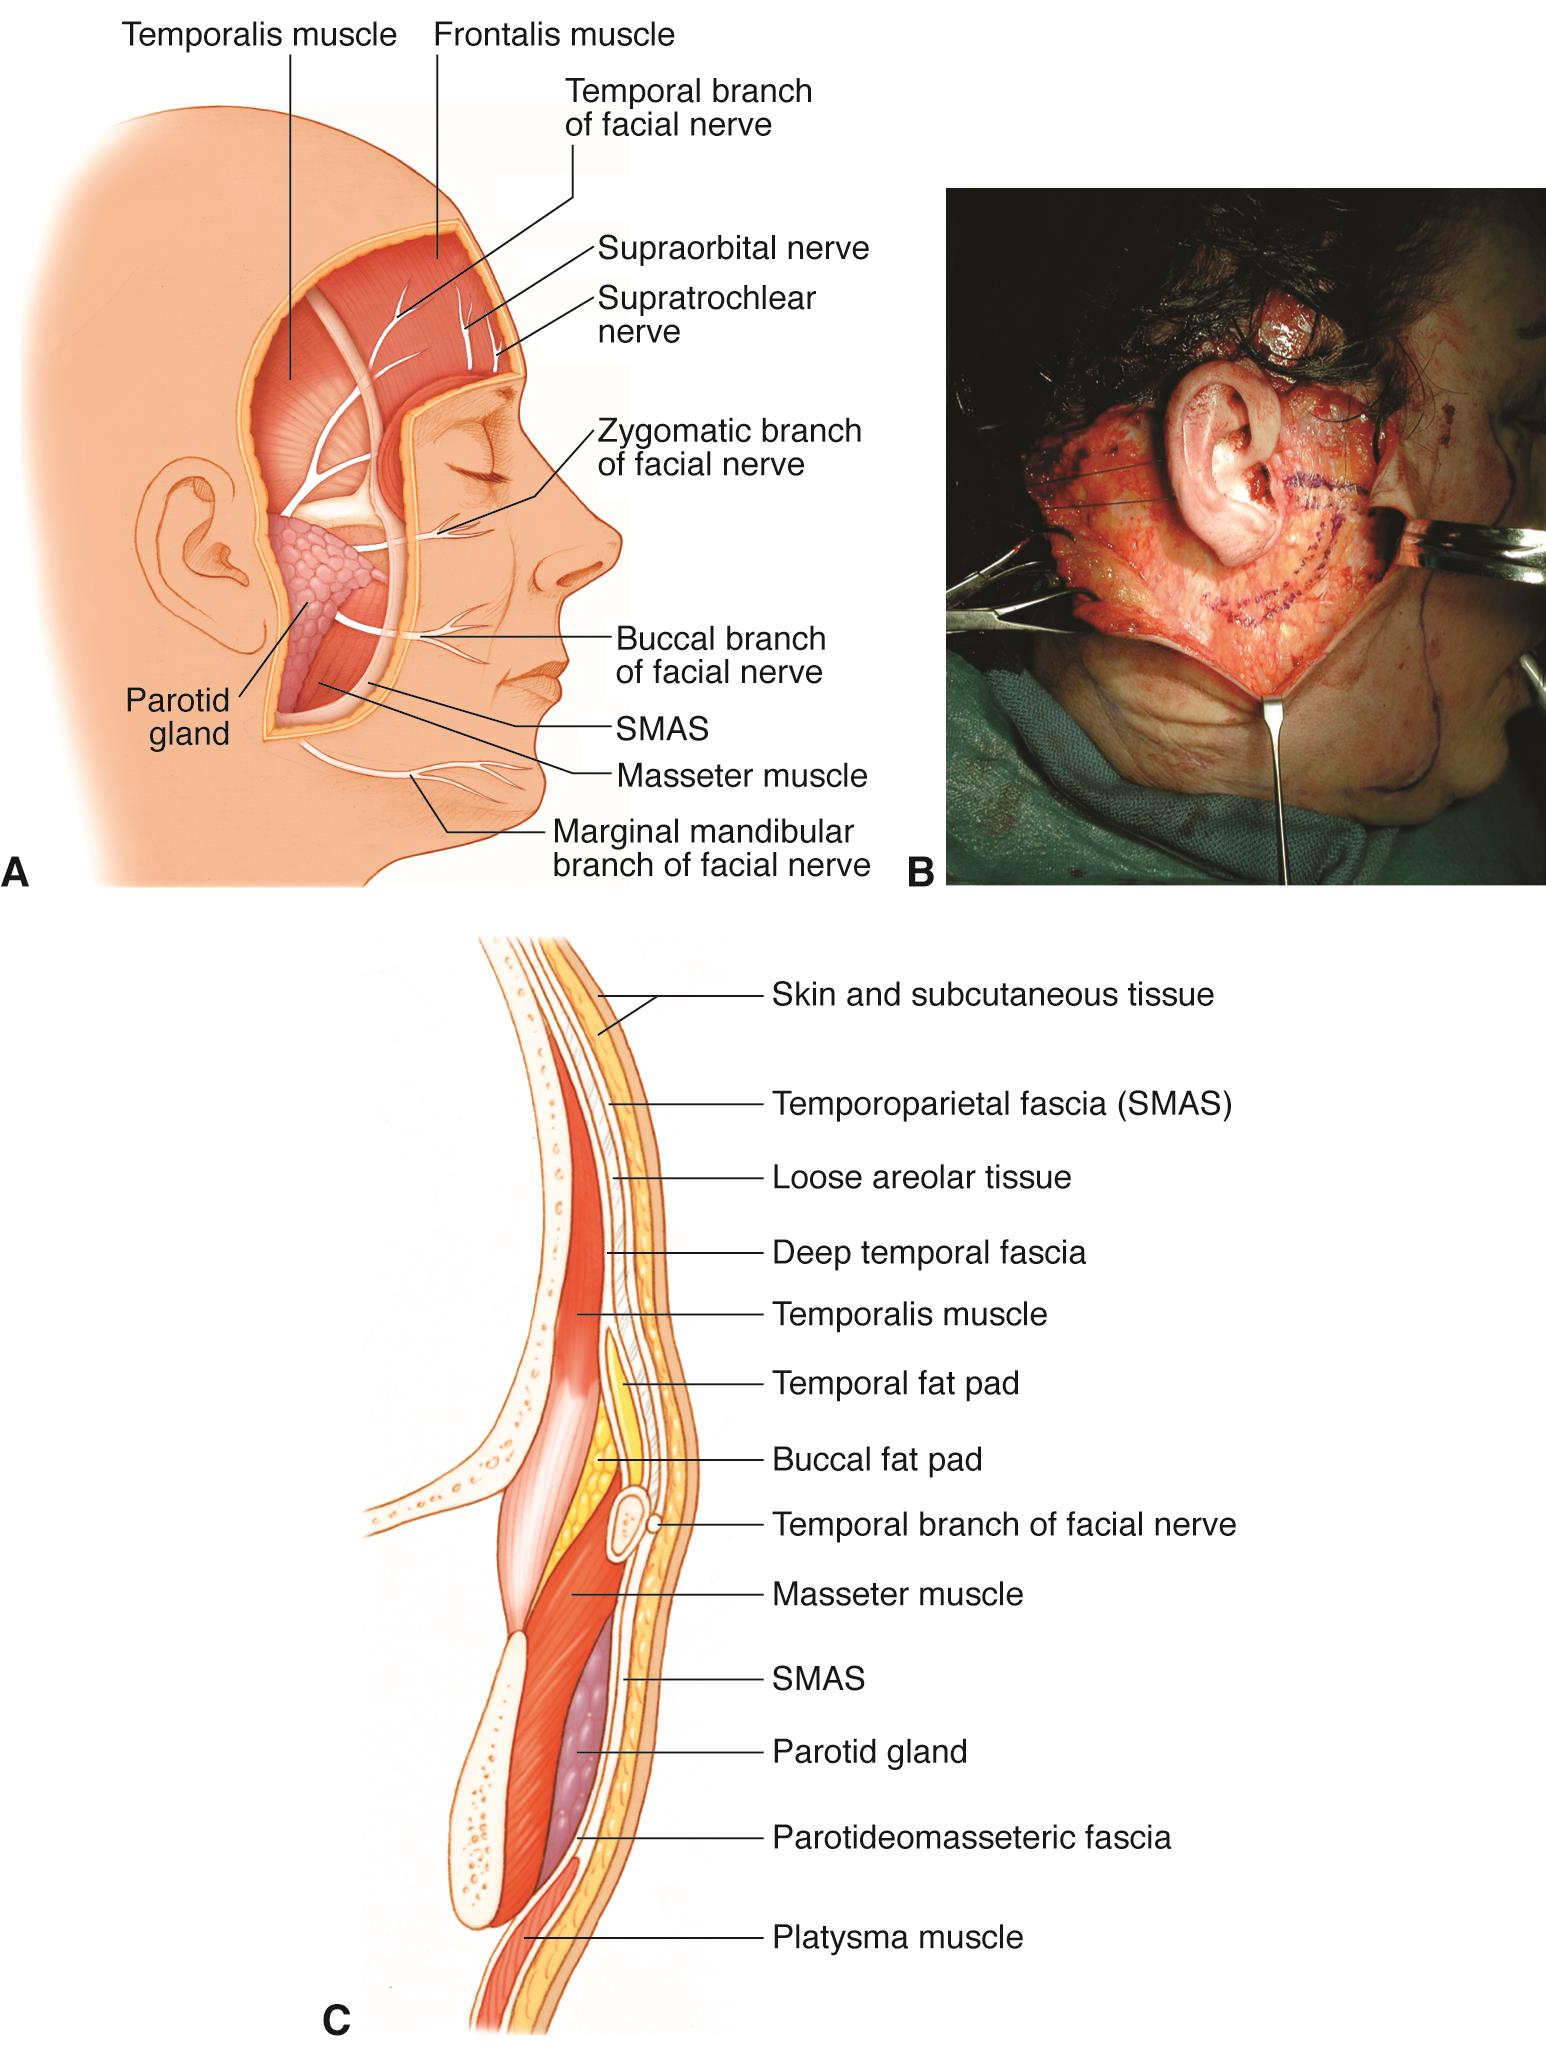 Superficial Musculoaponeurotic System American Academy Of